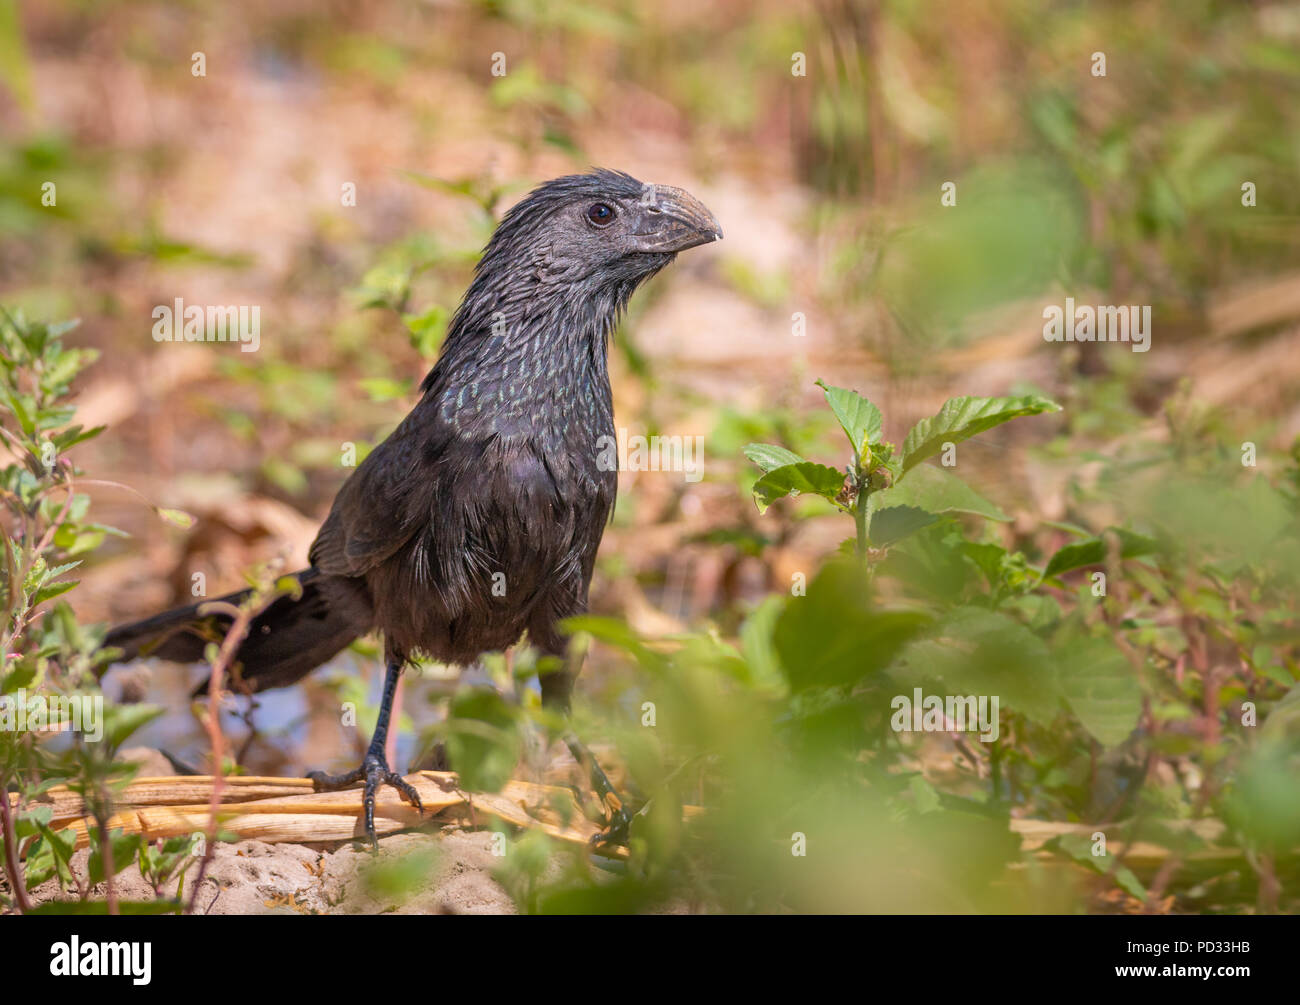 Groove billed ani standing in a field - Stock Image